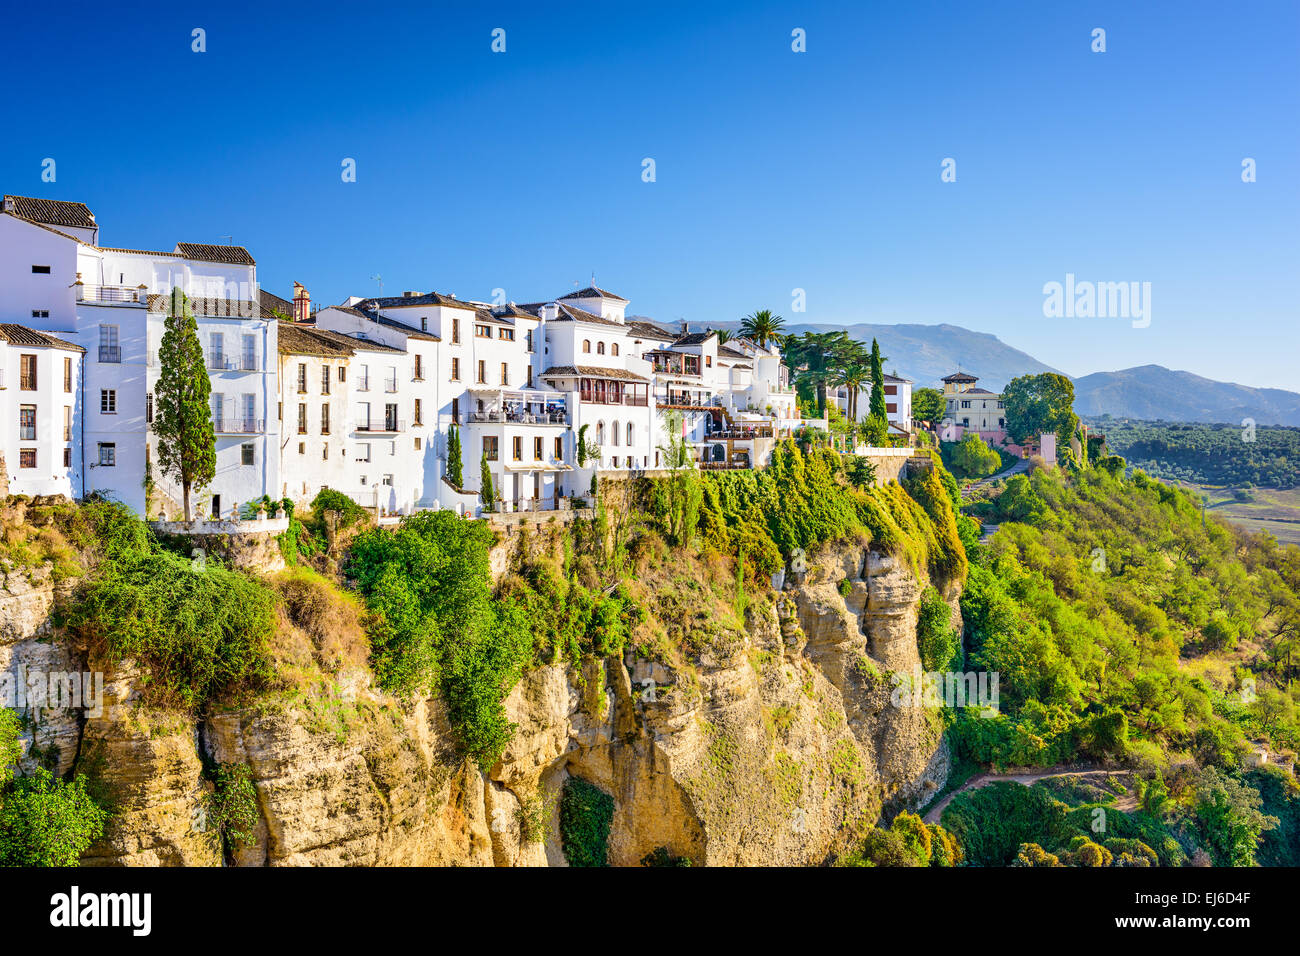 Ronda, Spain old town cityscape on the Tajo Gorge. - Stock Image